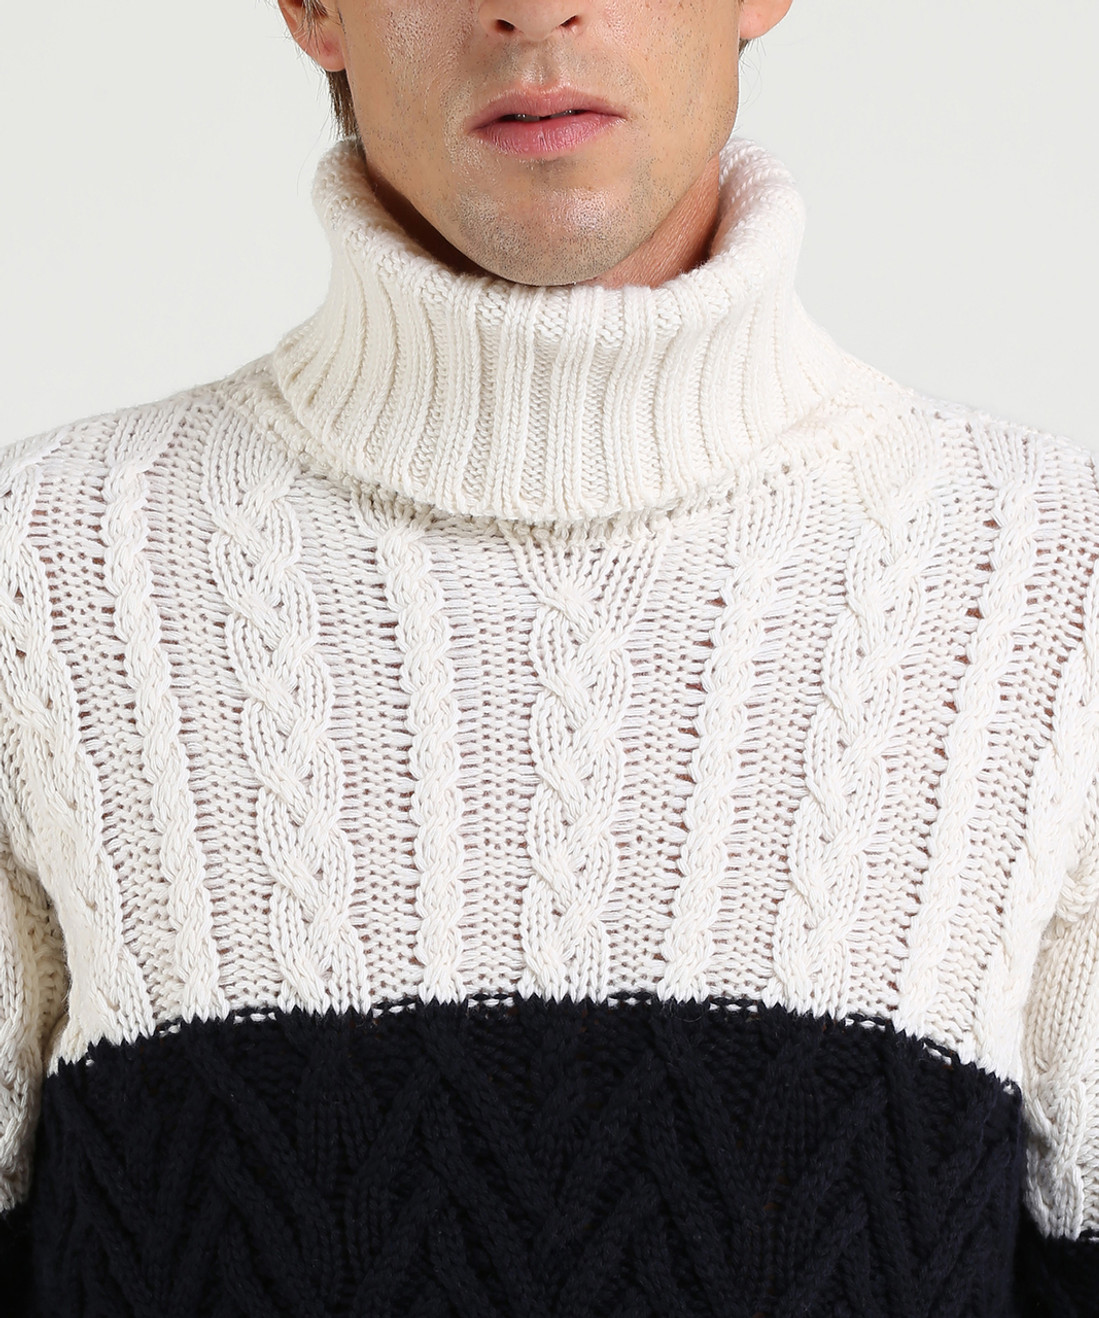 Men's Cable Stitch Merinos Turtle Neck Sweater - Iconic Pack